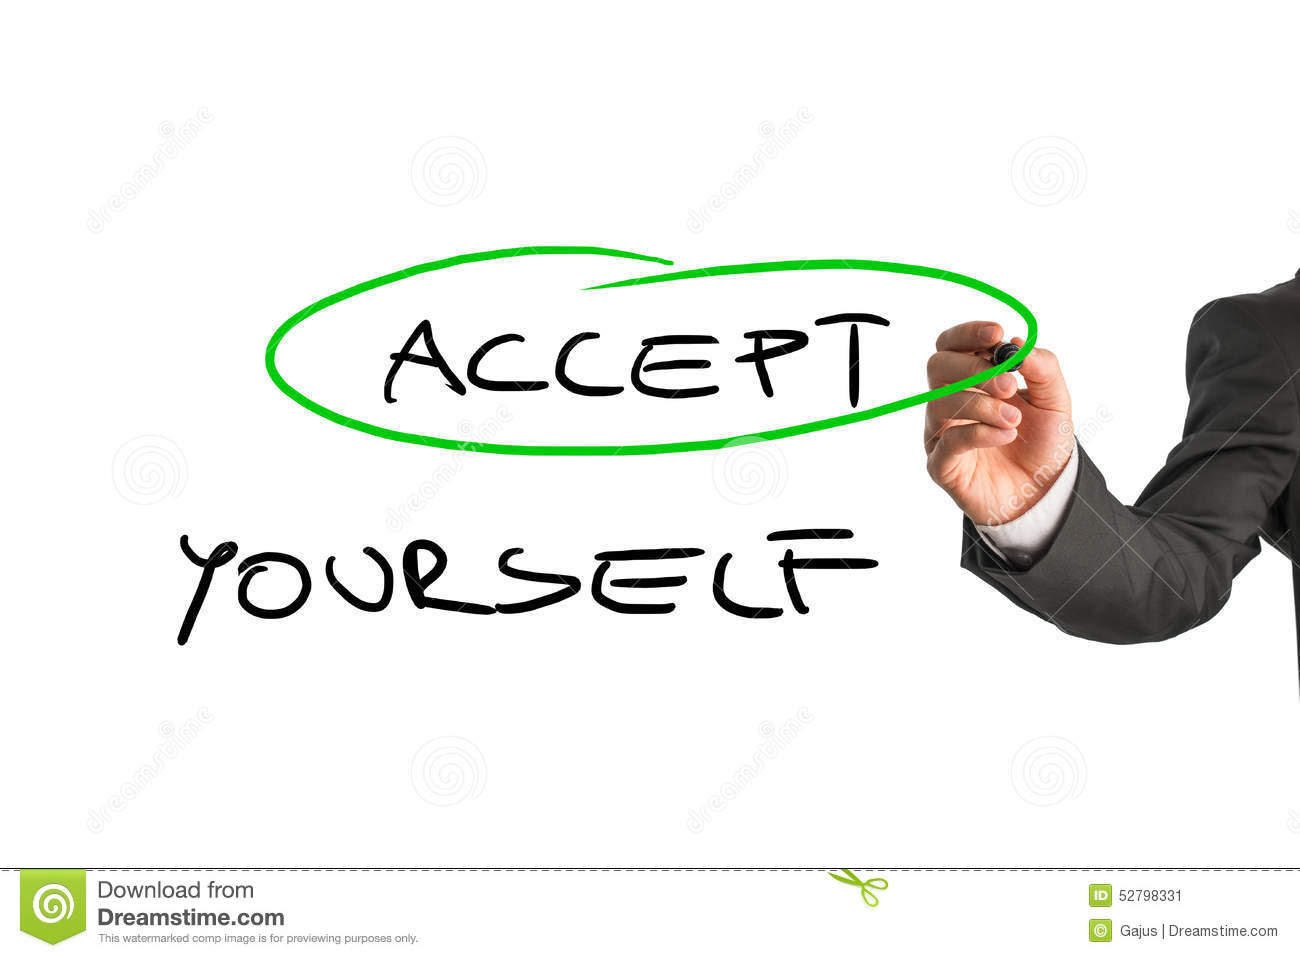 Accept Yourself Message Stock Photo - Image: 52798331